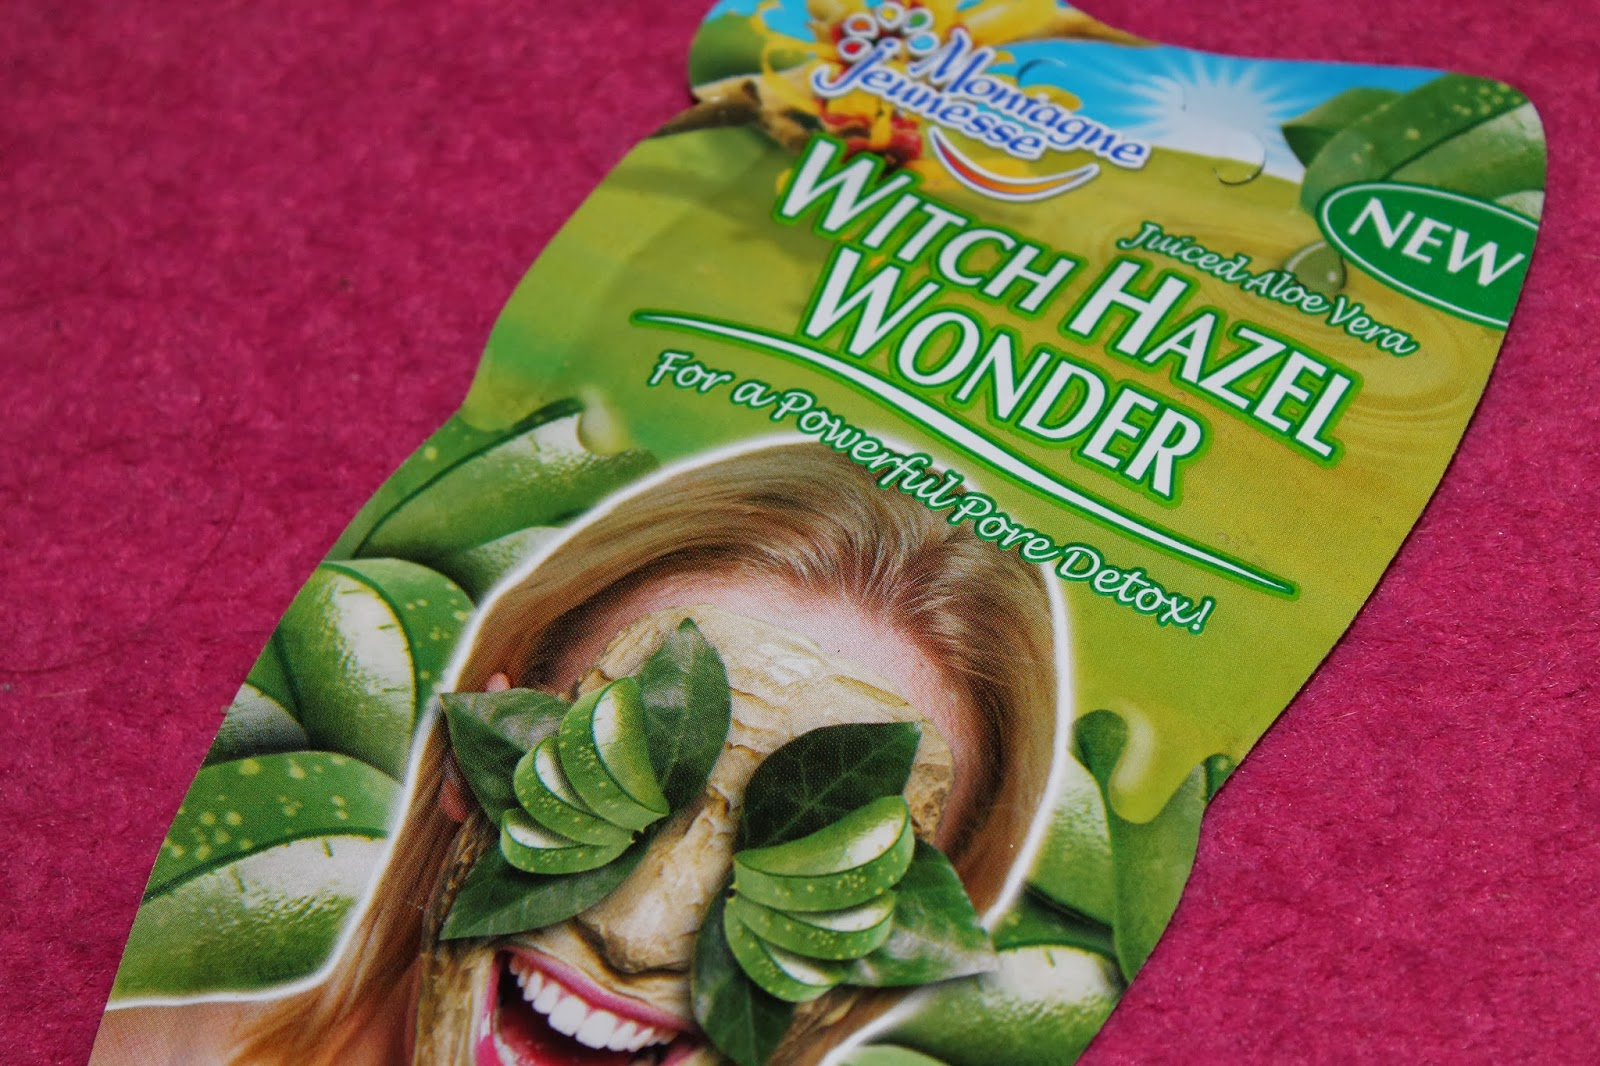 montagne-jeunesse-witch-hazel-wonder-face-mask-sachet